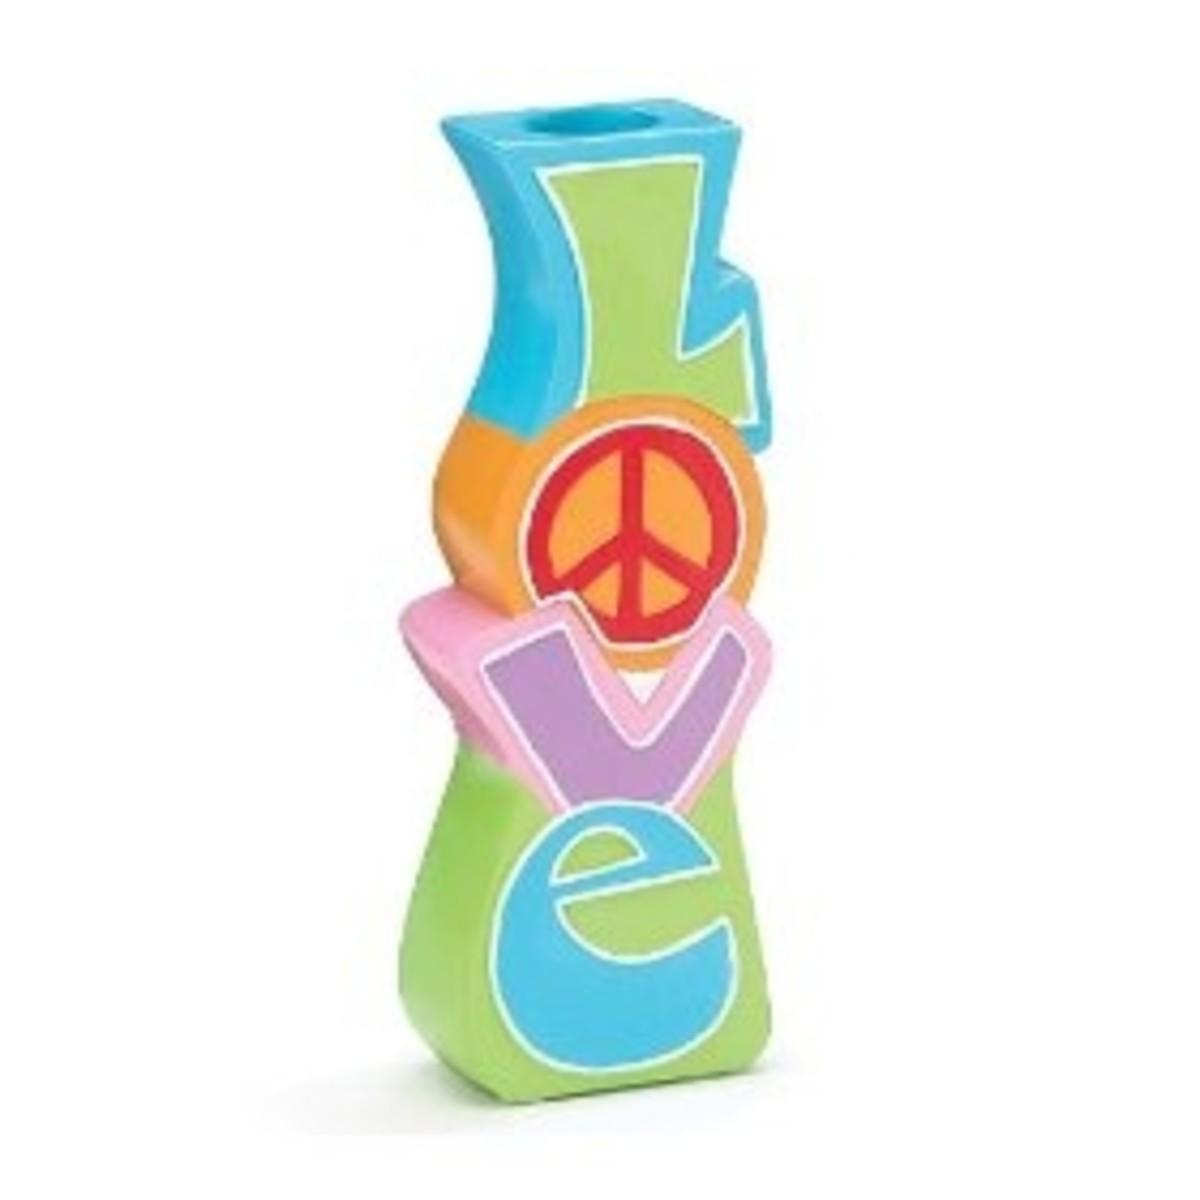 Retro 60's Style Hippie Love & Peace Vase featuring Multi-colored Peace Signs